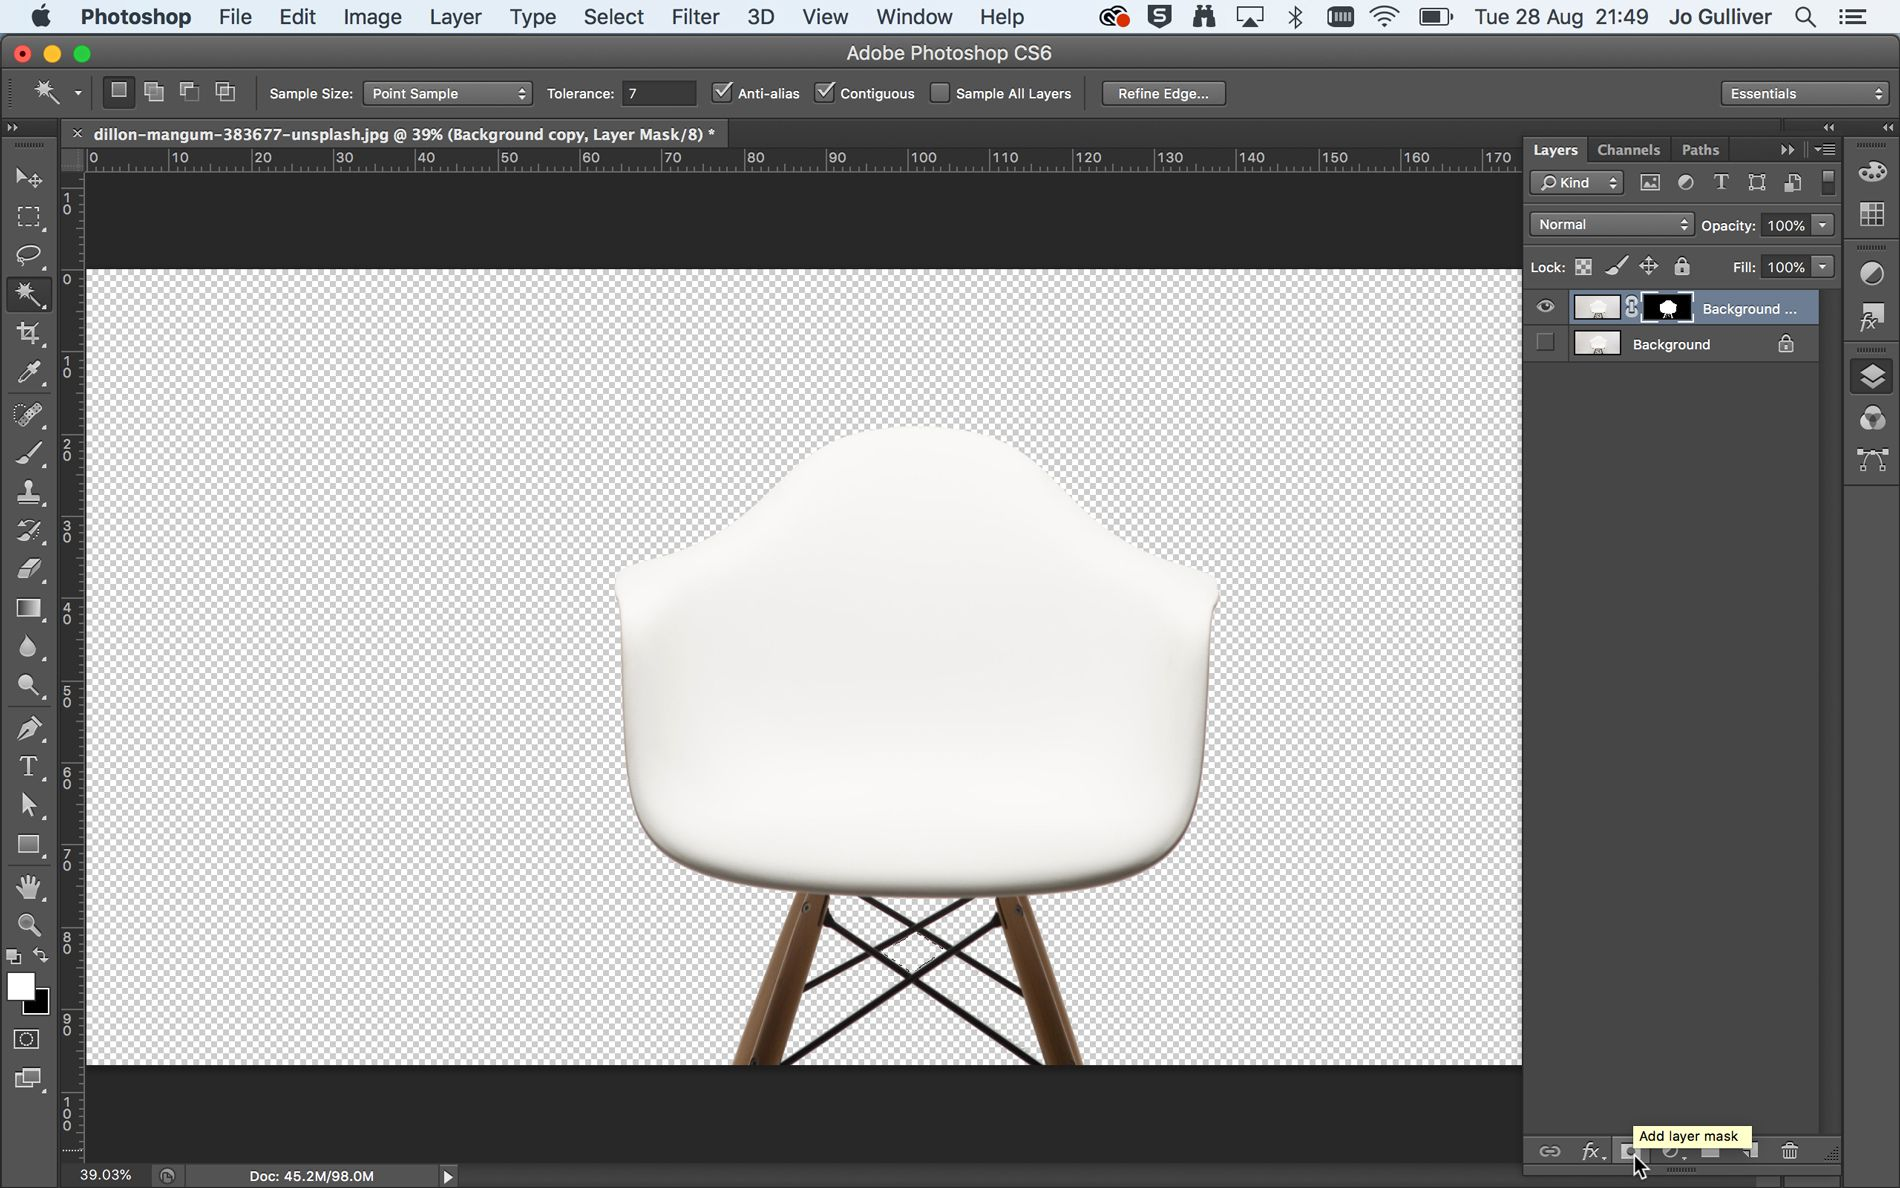 How to remove a background in